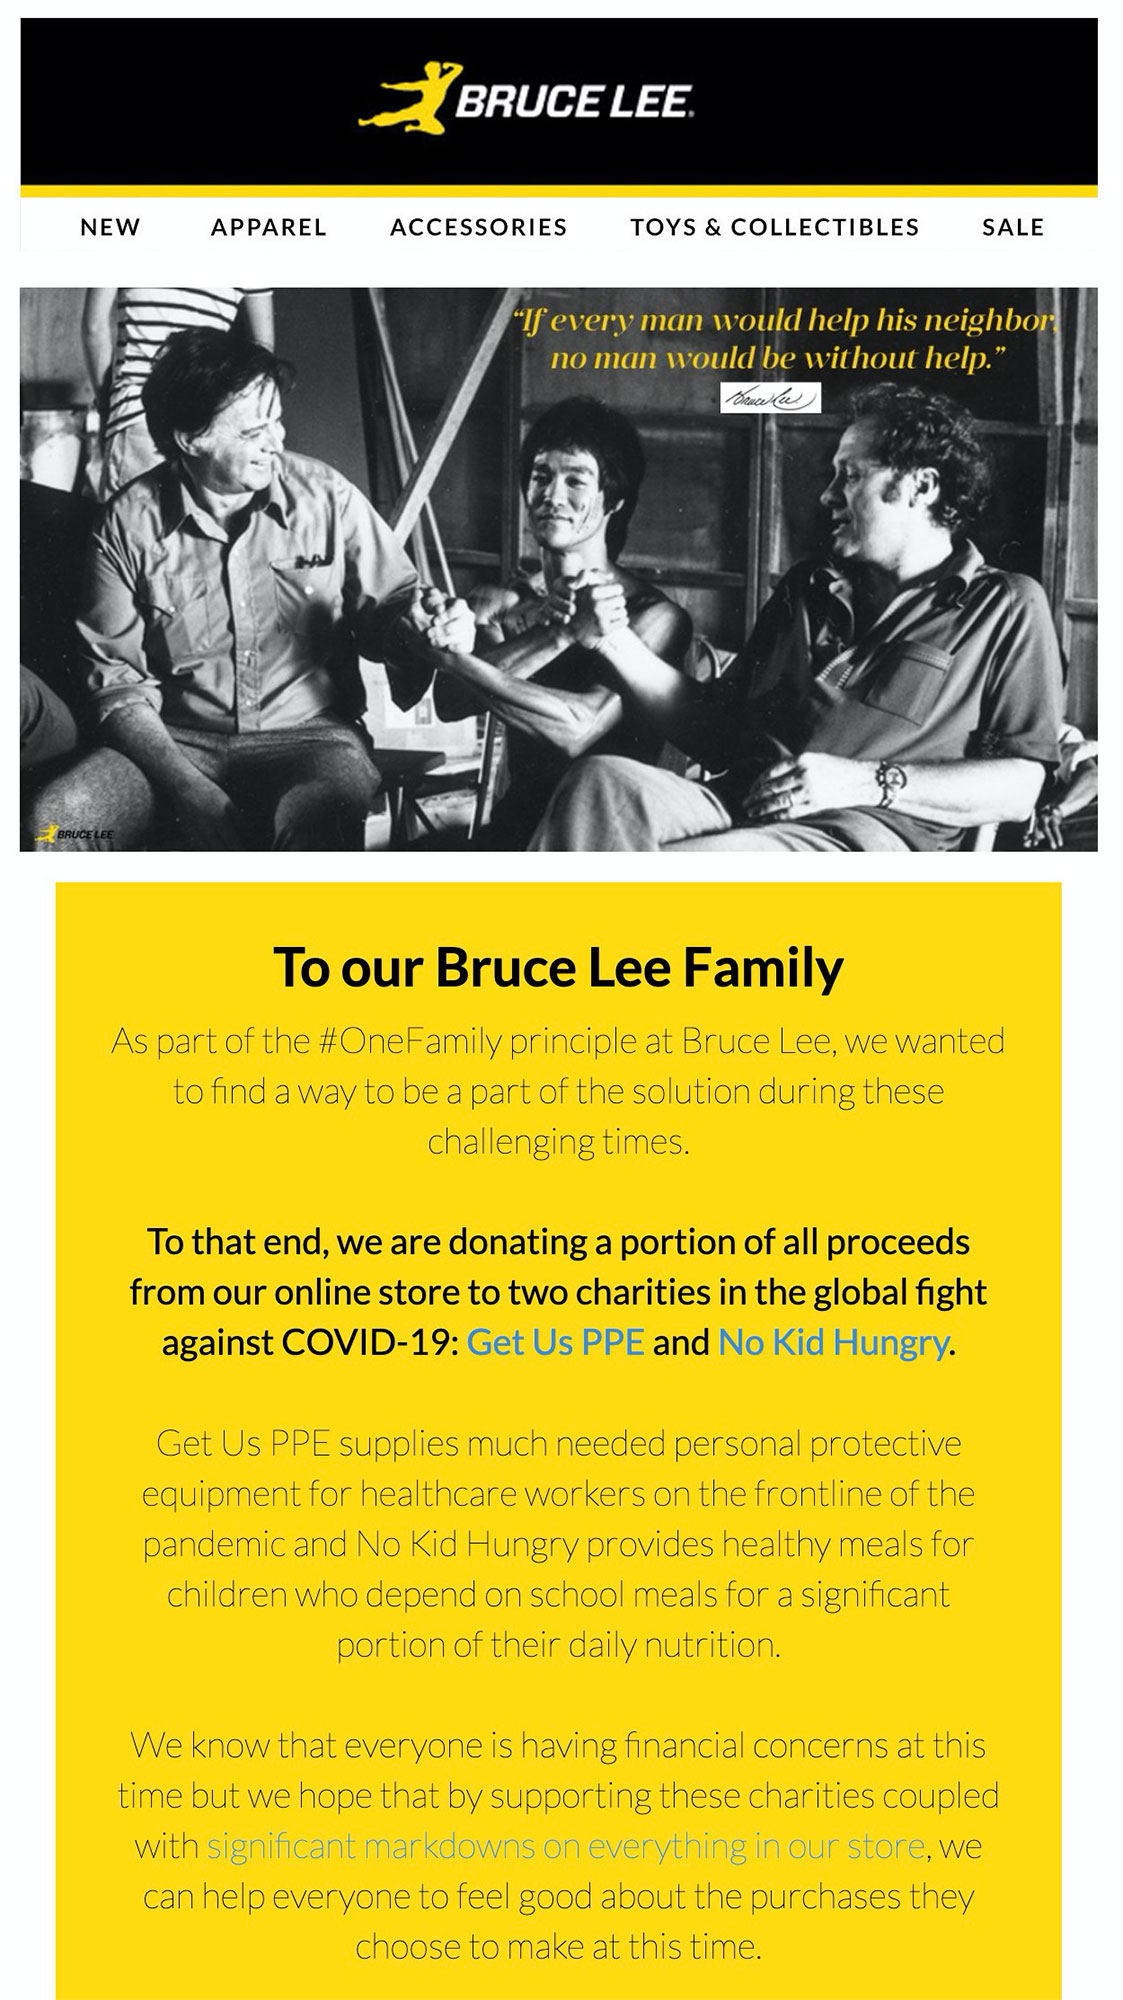 The Bruce Lee website donates a portion of sales to charities.